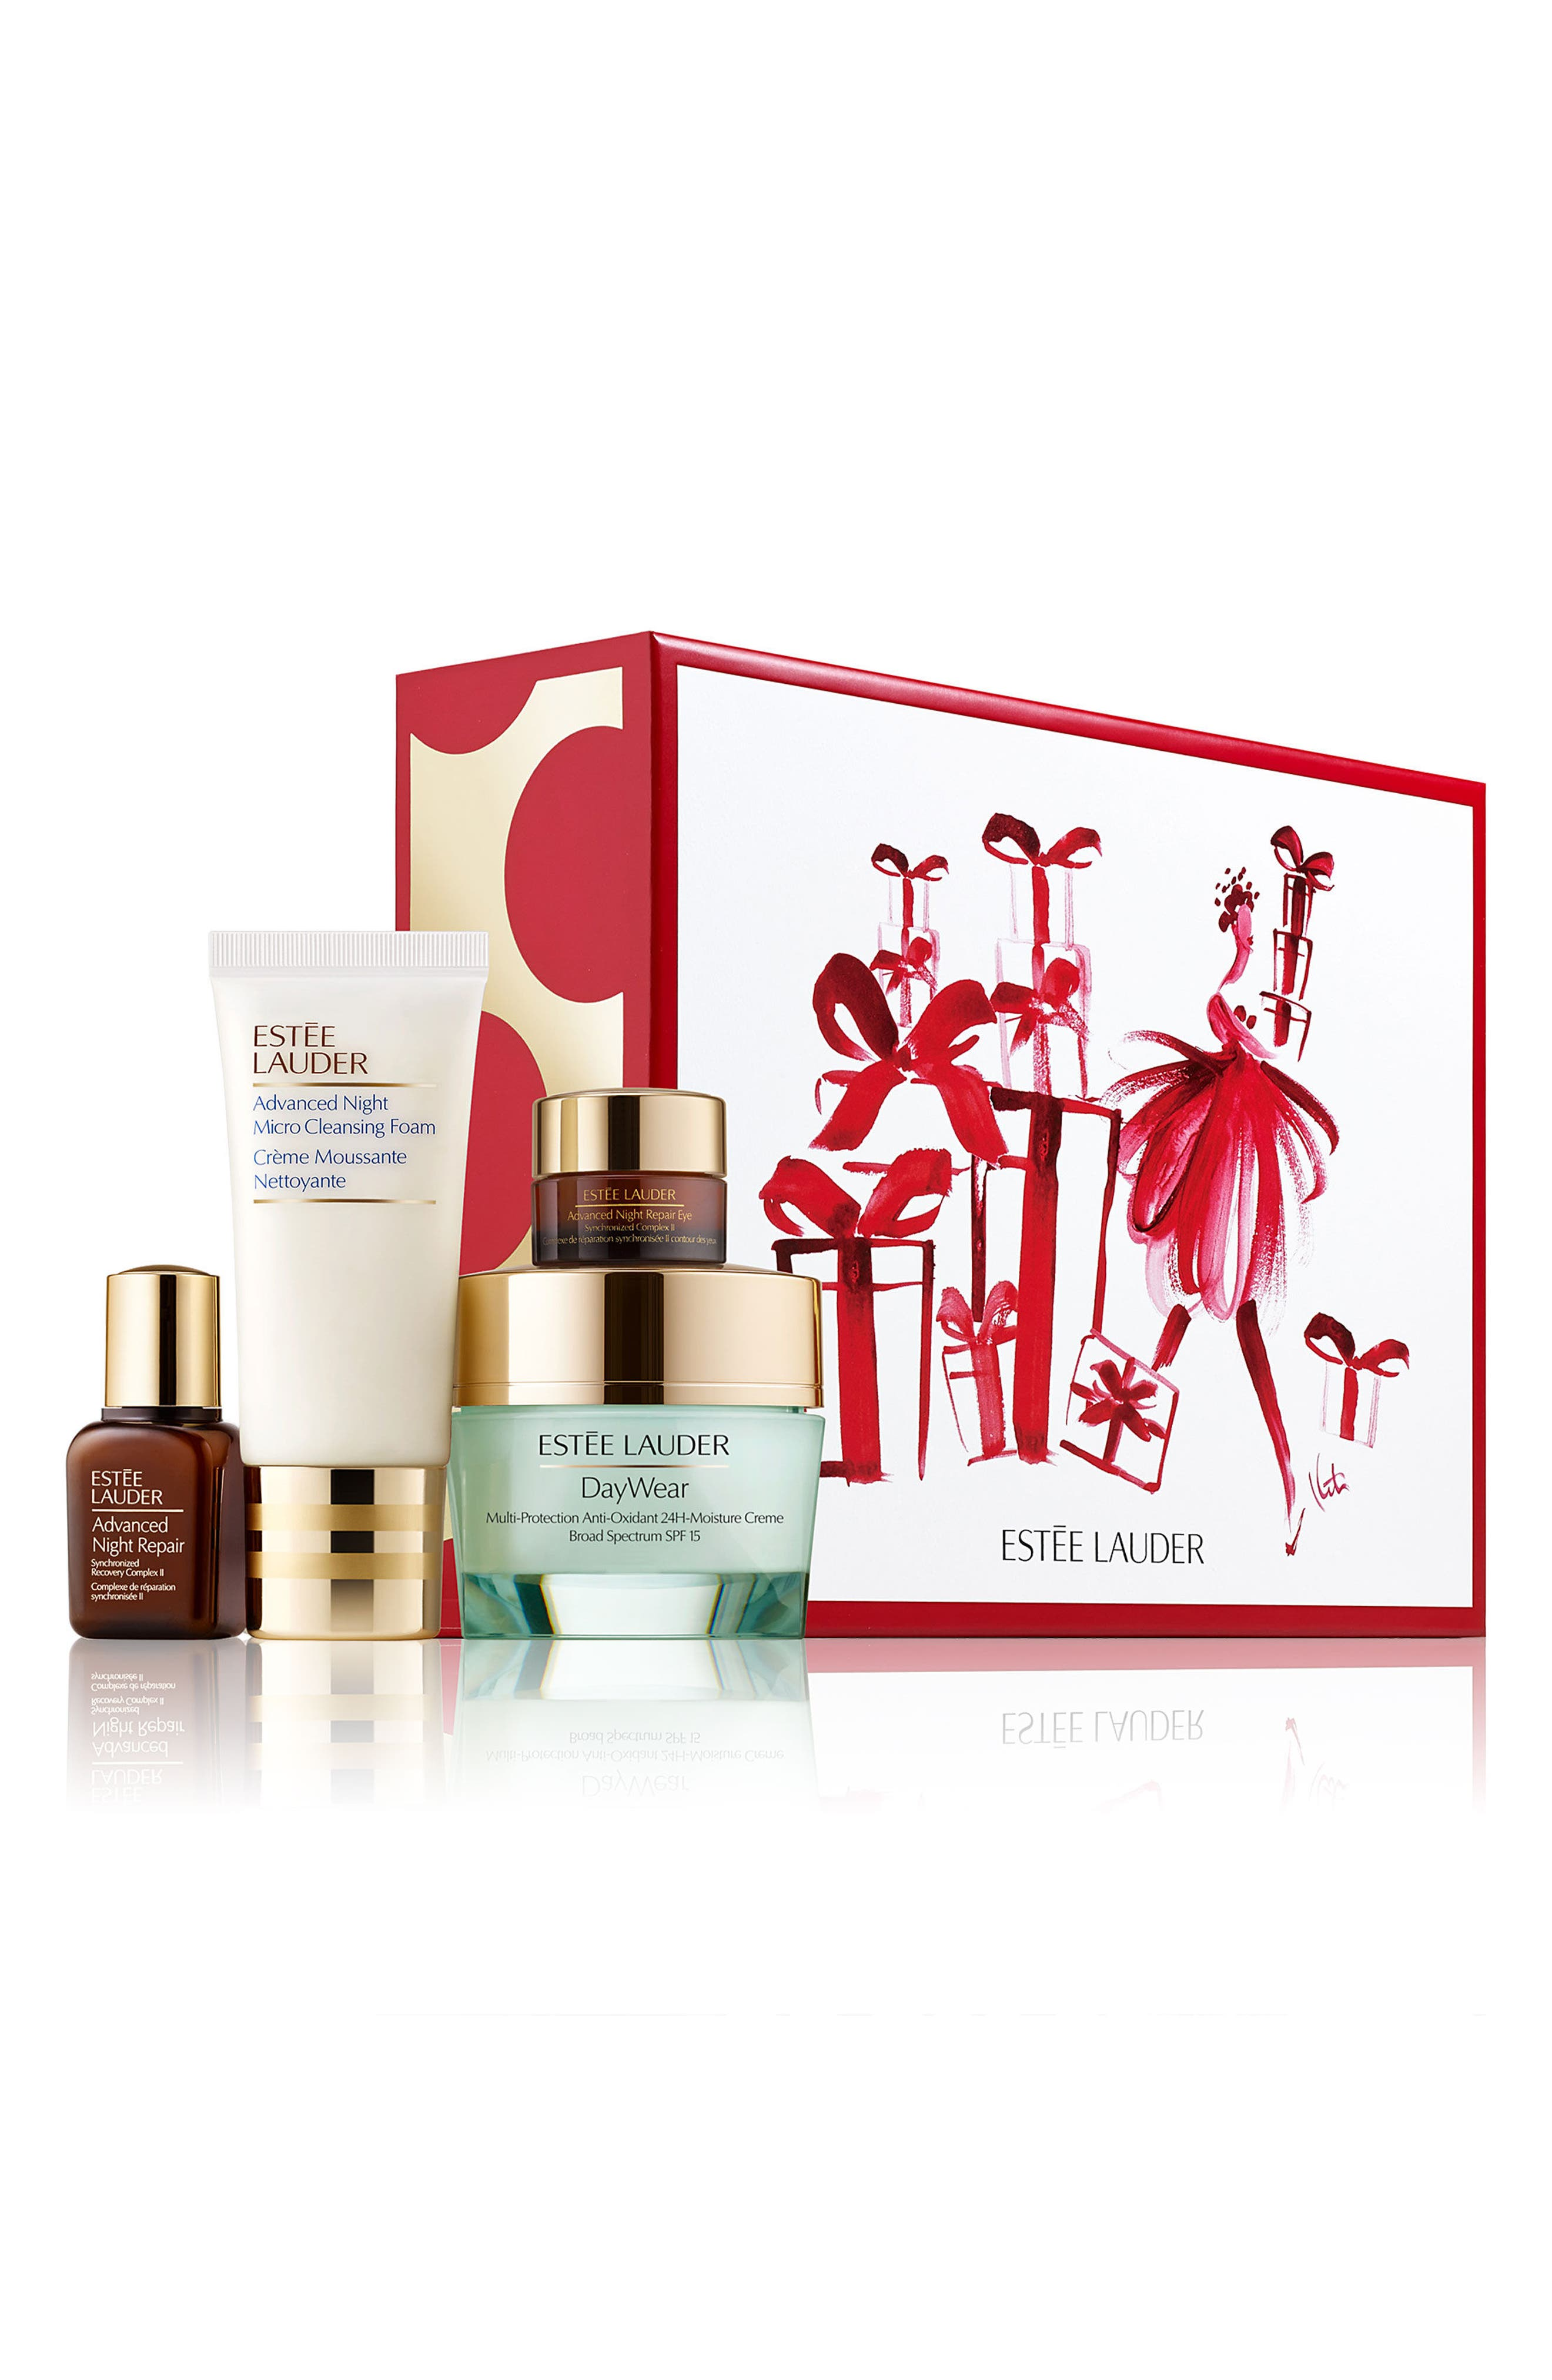 Estée Lauder Protect + Hydrate Collection ($115 Value)